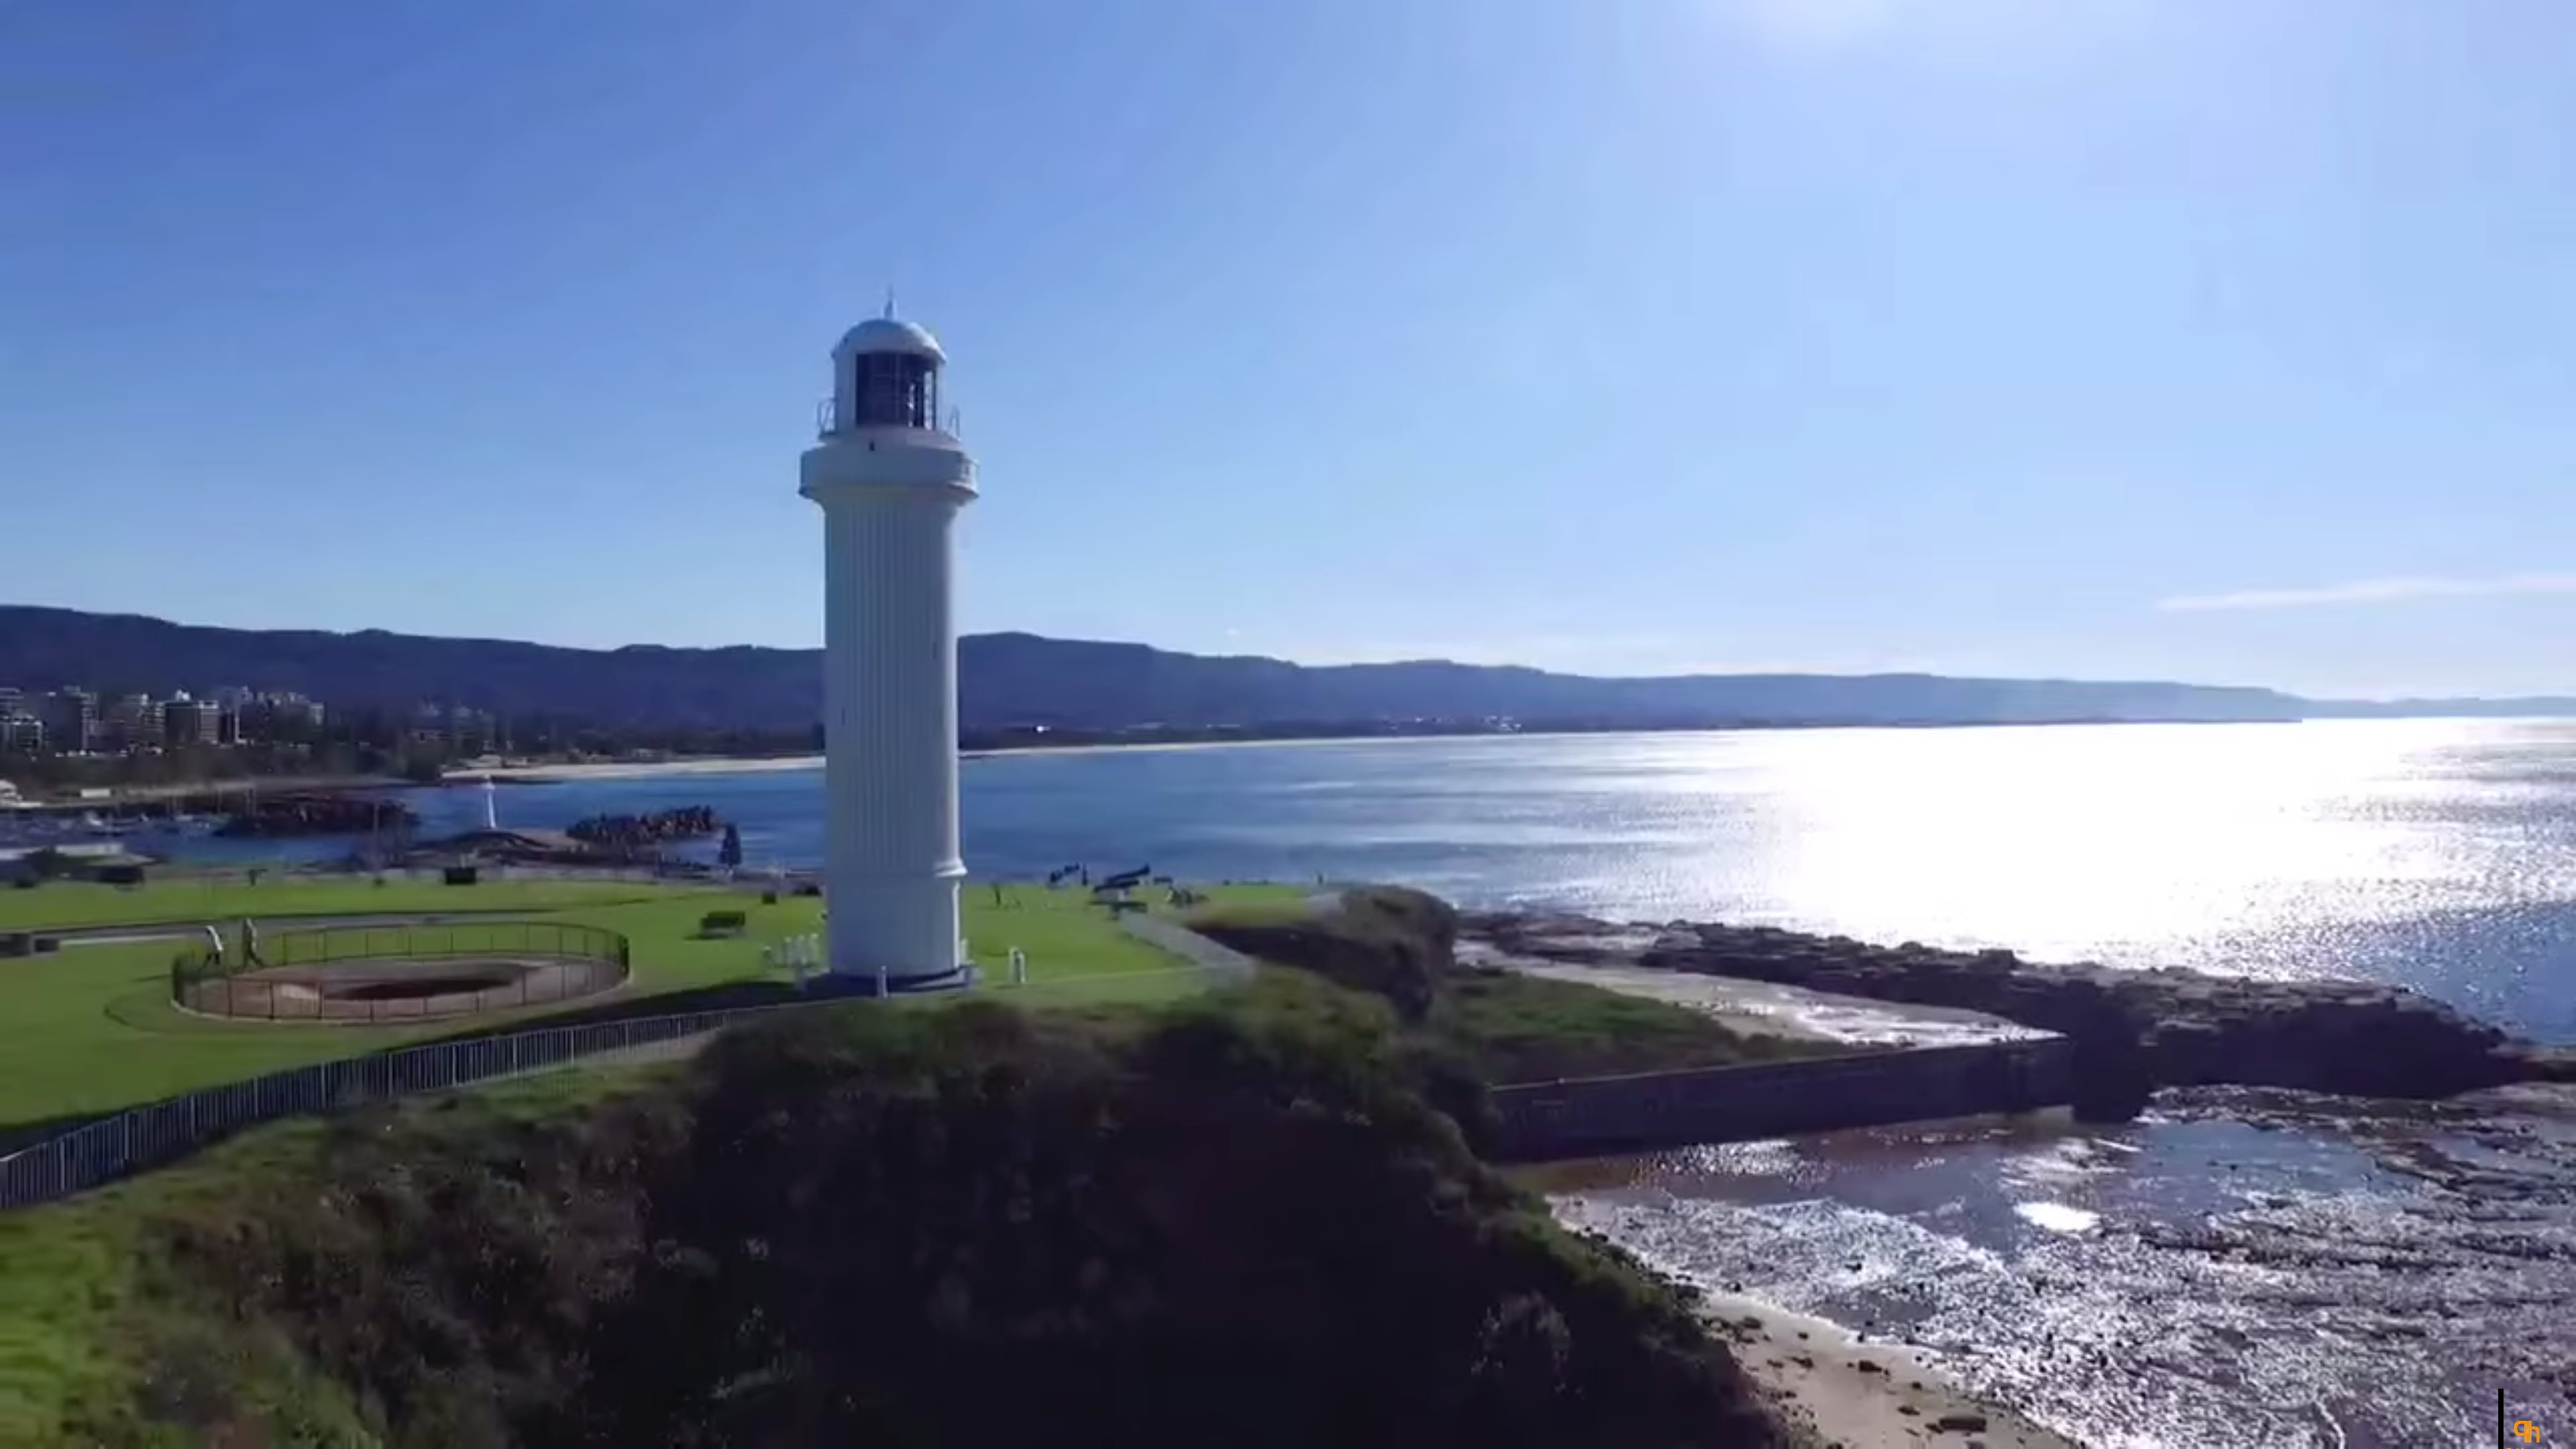 DJI Phantom 3 – Wollongong, New South Wales